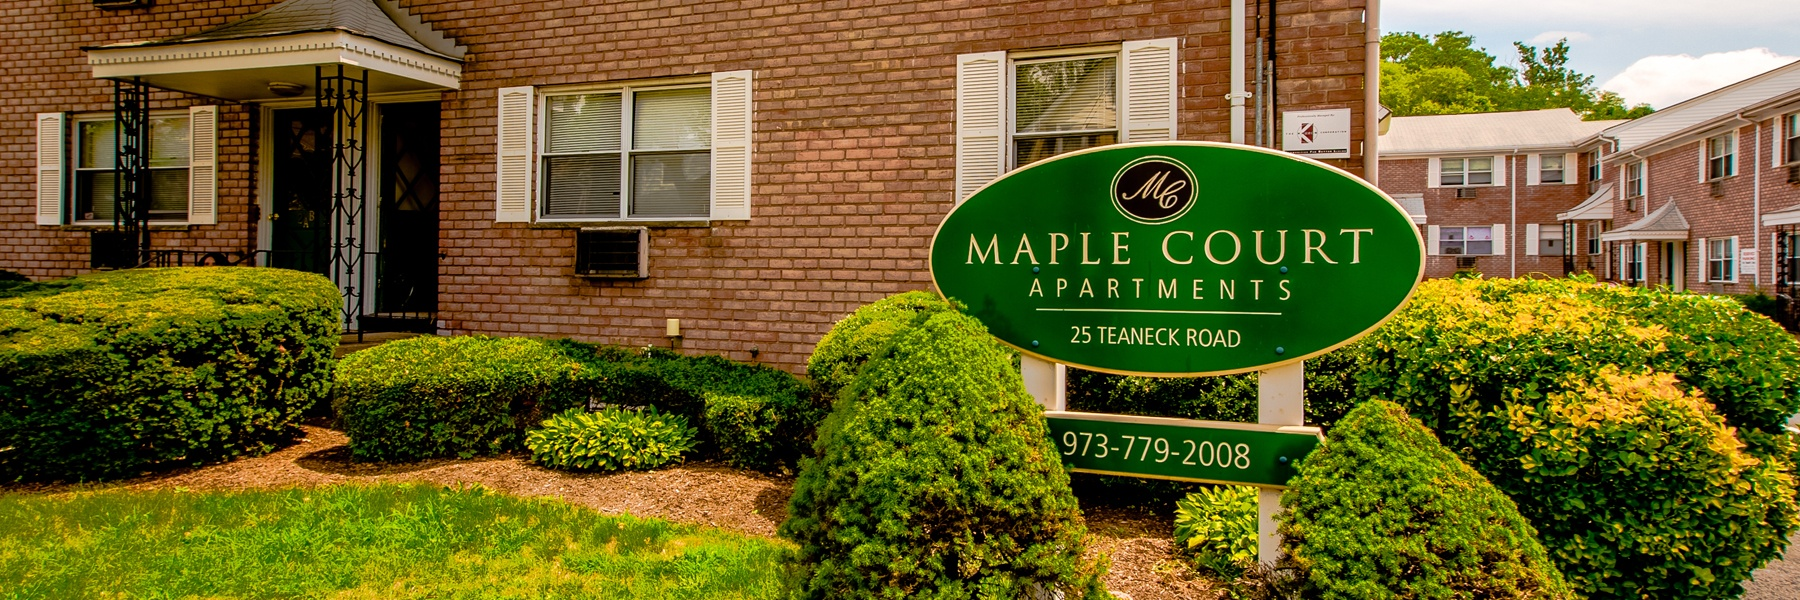 Maple Court Apartments For Rent in Ridgefield Park, NJ Welcome